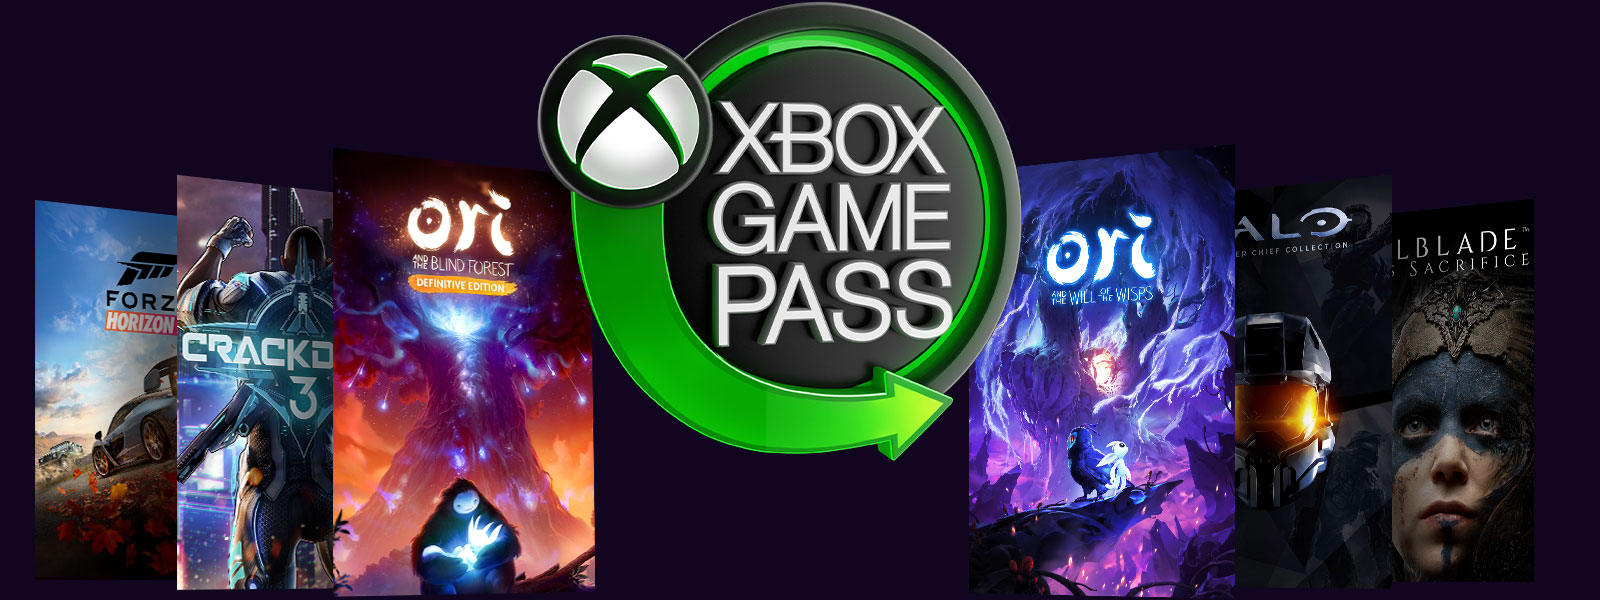 Xbox Game Pass logo with box shot of Ori and the Will of the Wisps, Ori and the Blind Forest, Crackdown 3, Halo, Forza Horizon 4 and Hellblade